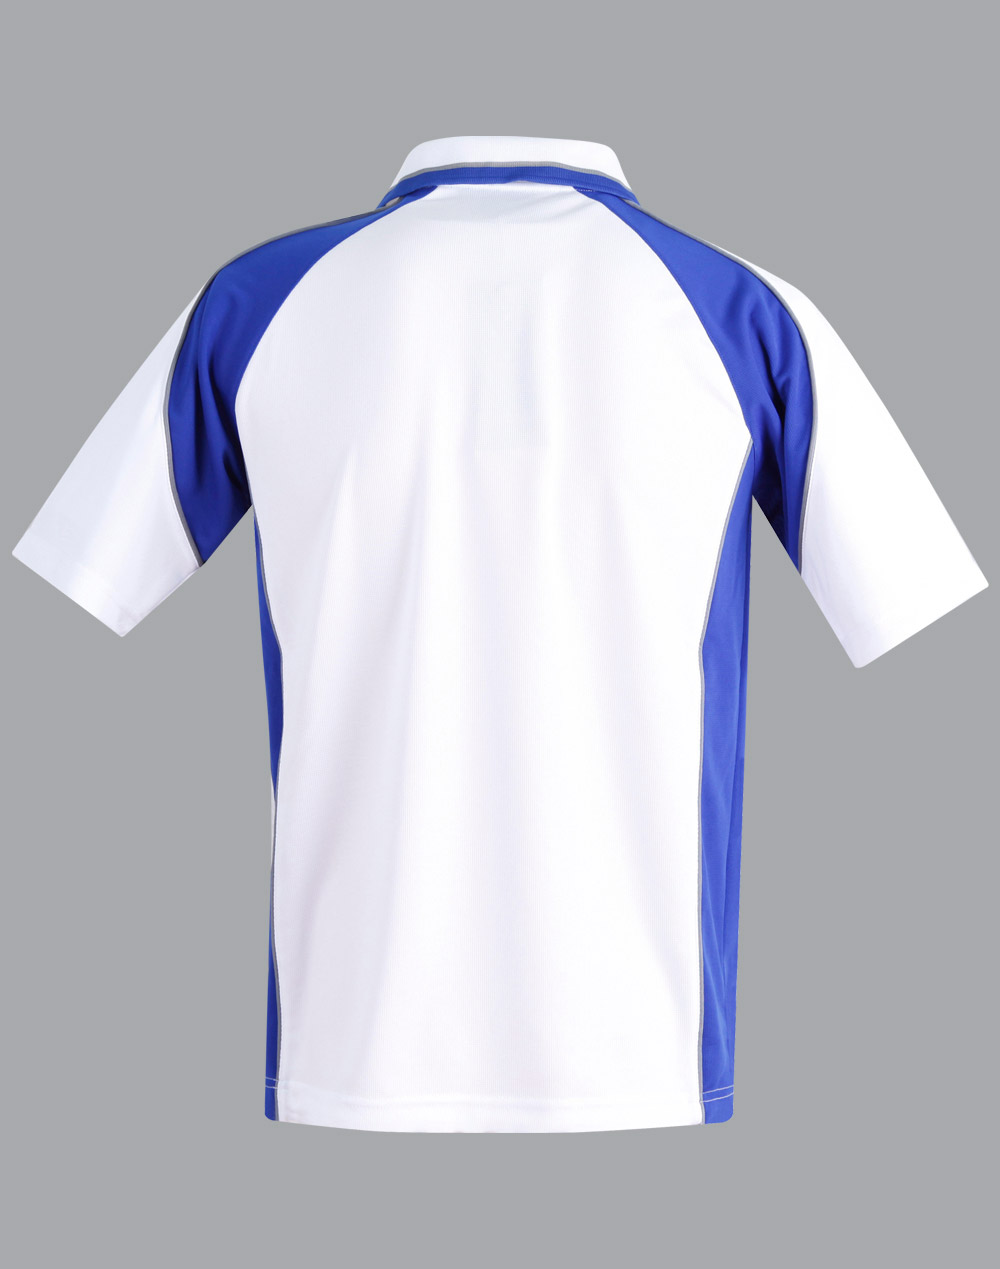 https://s3-ap-southeast-1.amazonaws.com/ws-imgs/POLOSHIRTS/PS49_WhiteRoyal_Back.jpg